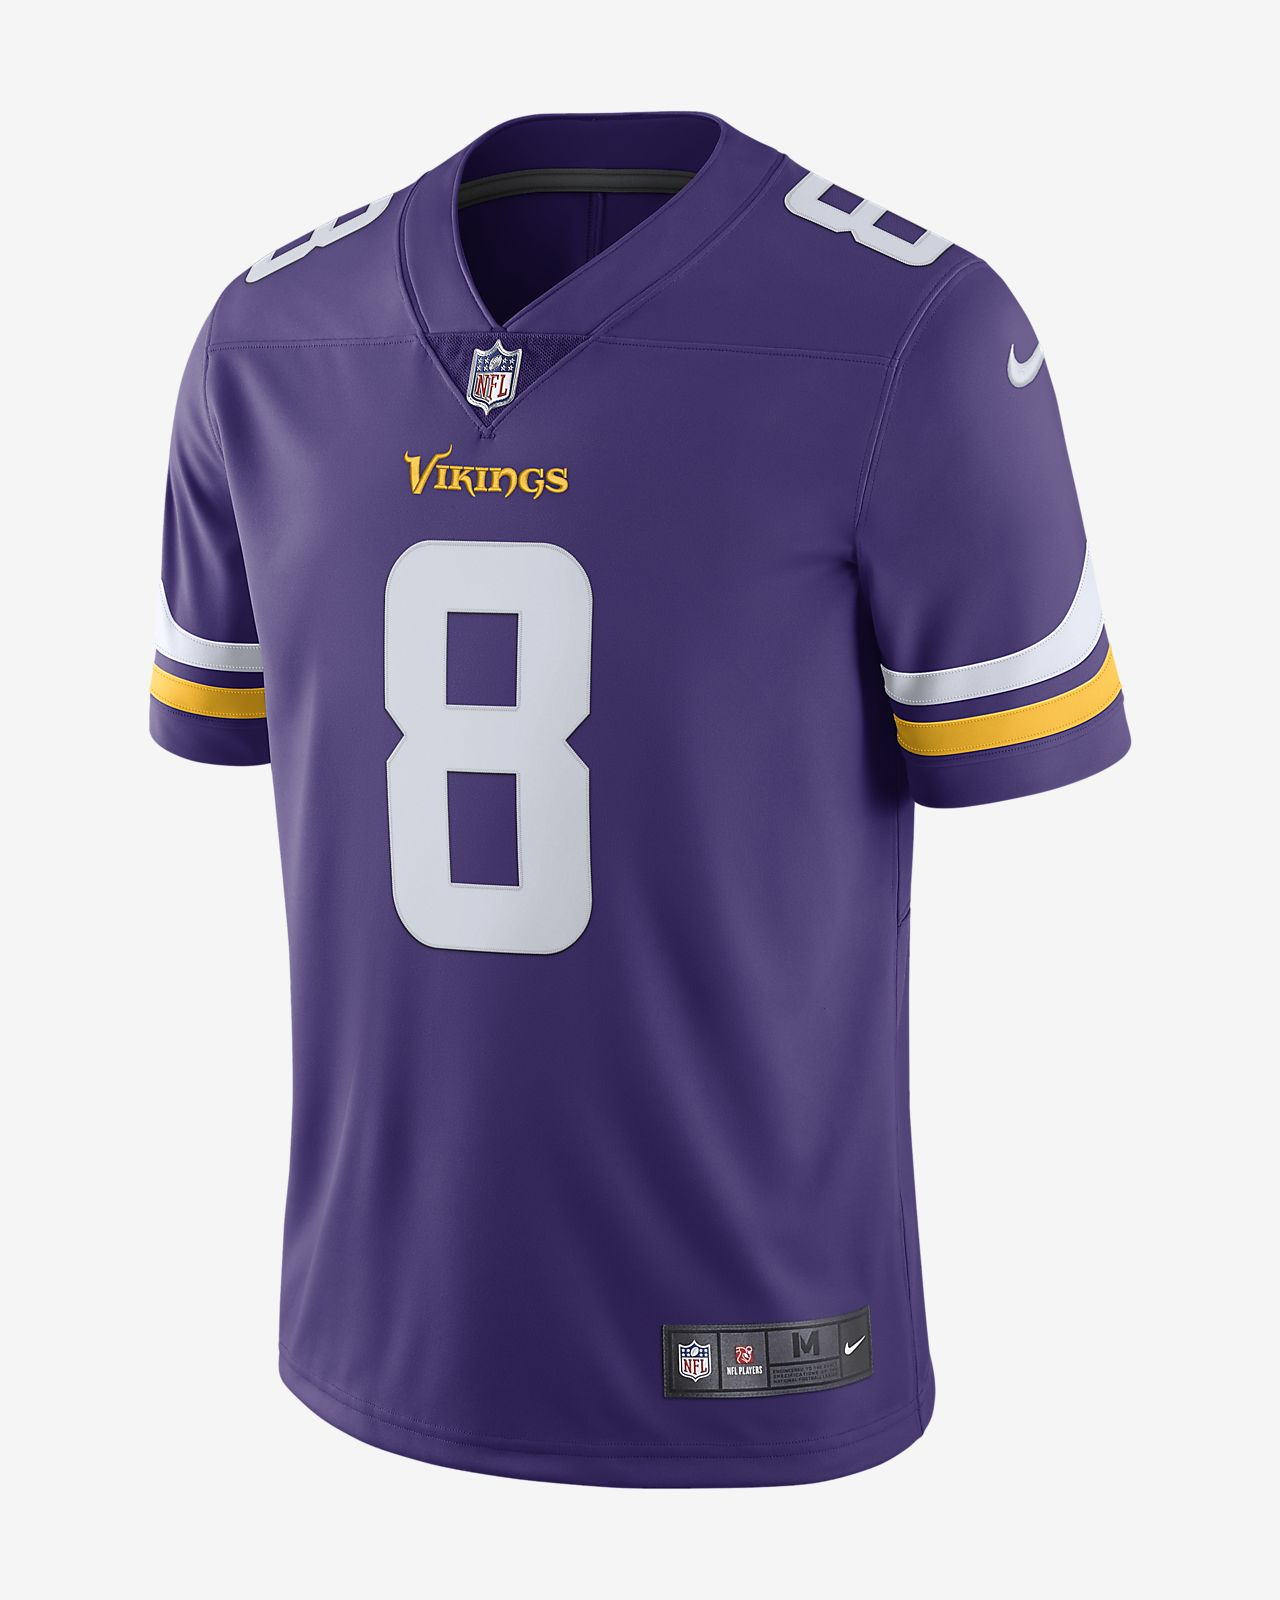 dd4ffdd7 NFL Minnesota Vikings Limited (Kirk Cousins) Men's Football Jersey